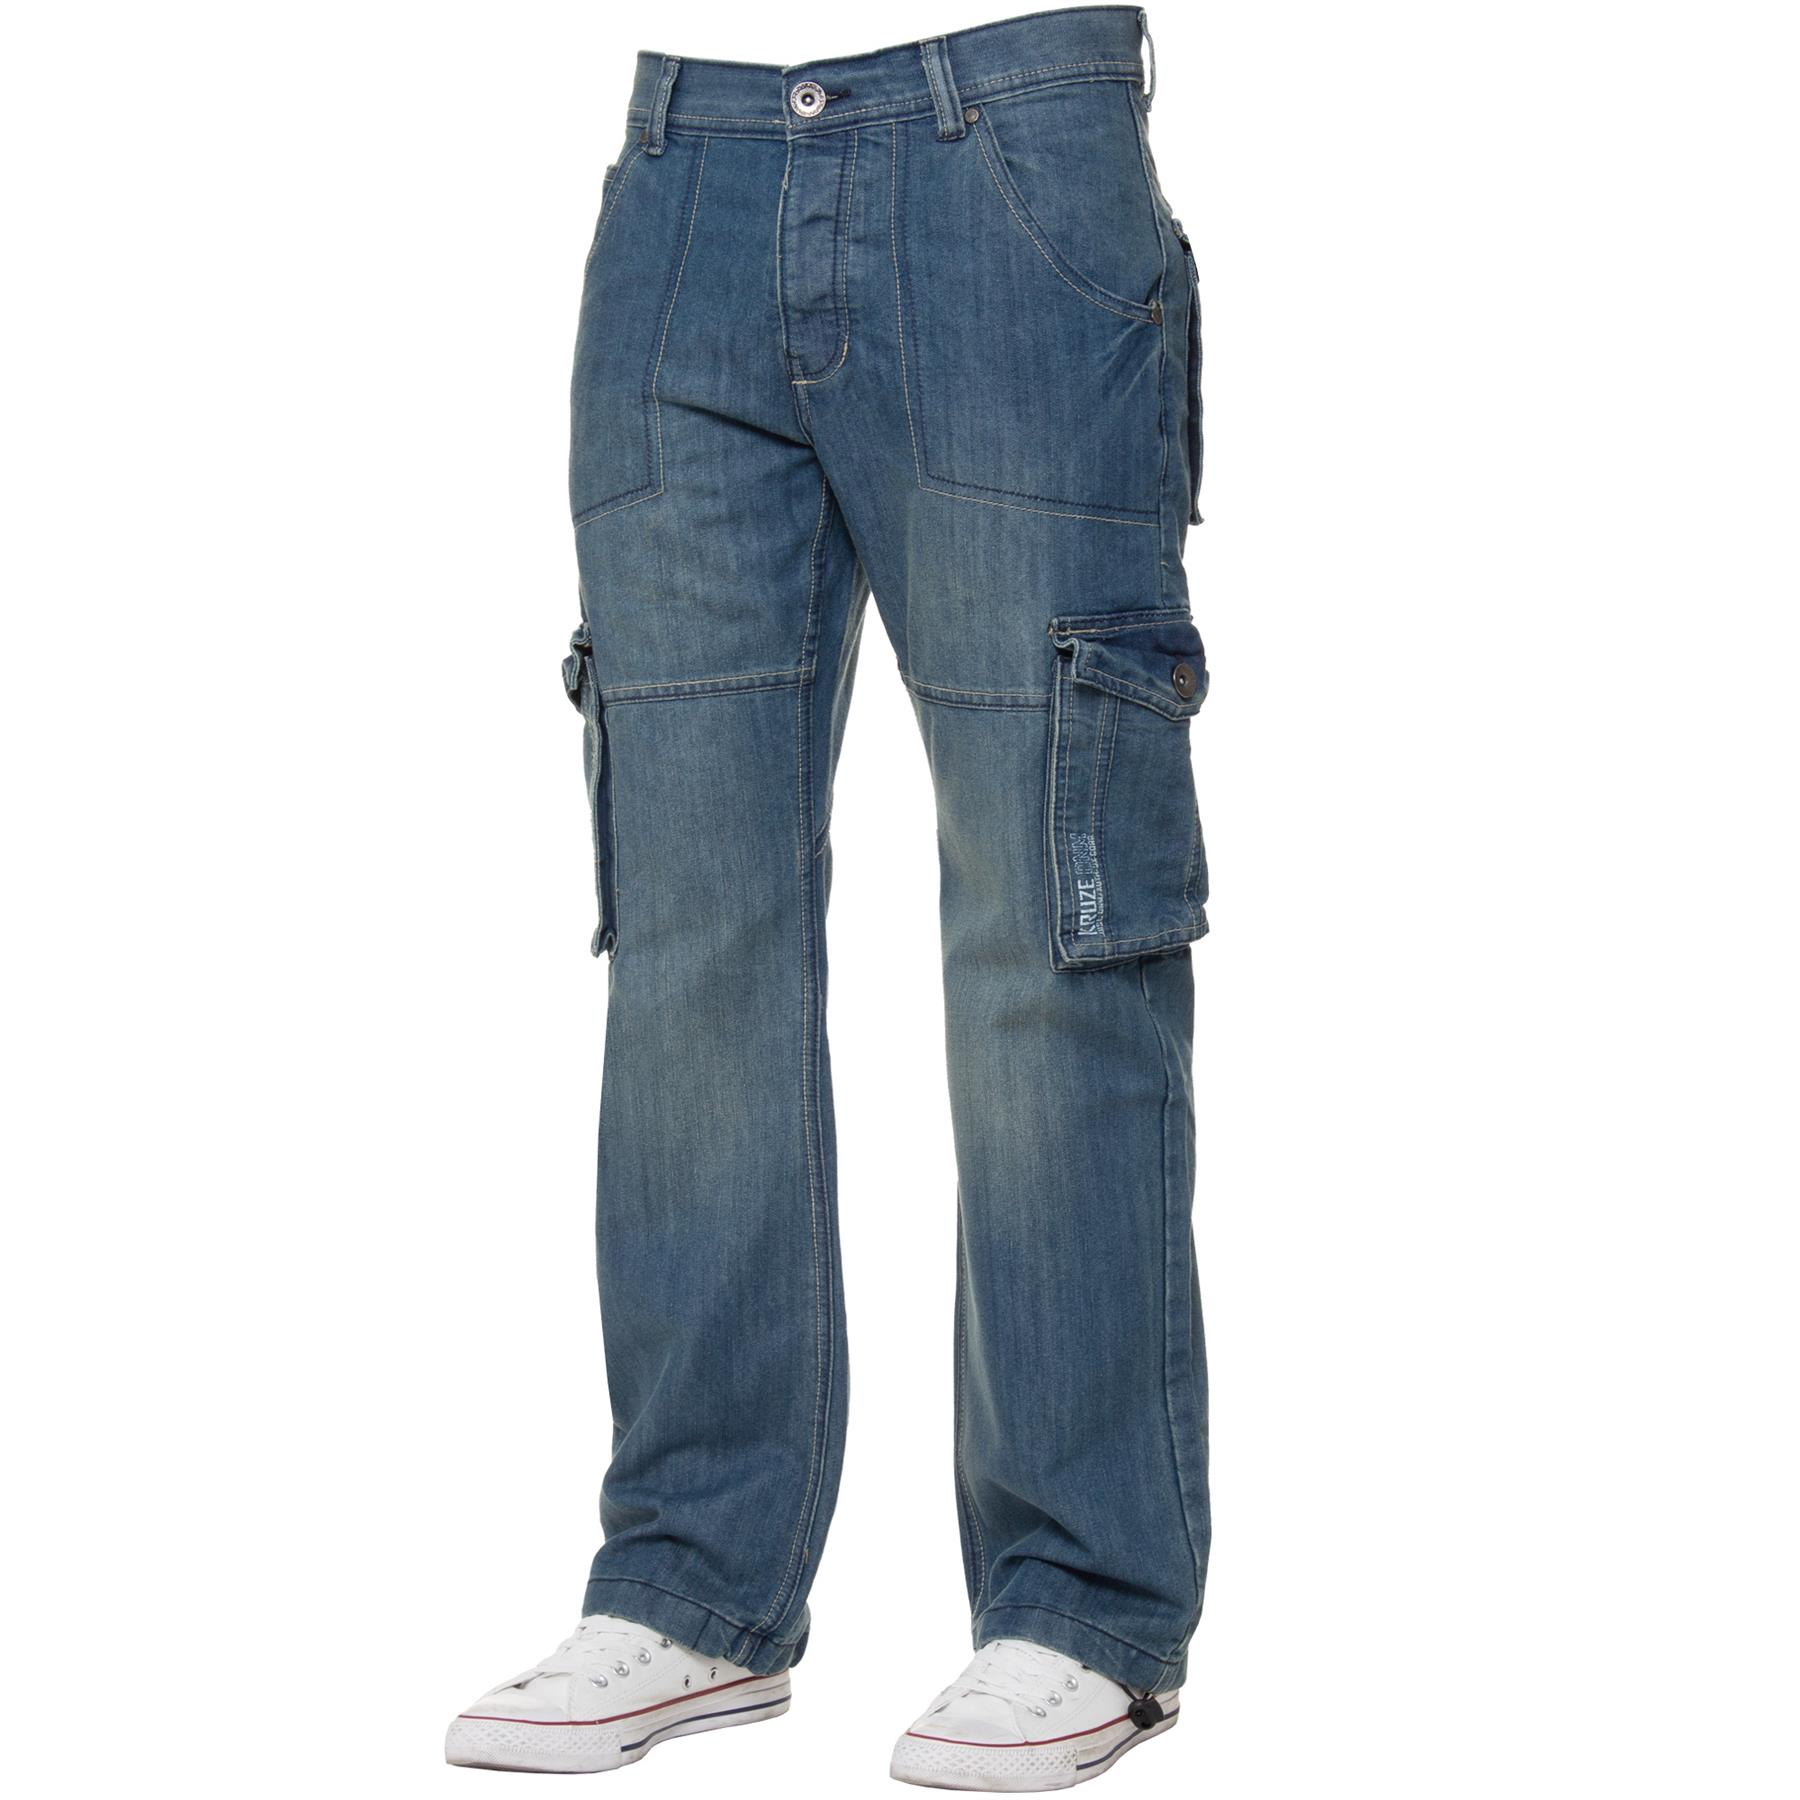 Kruze-Mens-Cargo-Combat-Jeans-Casual-Work-Denim-Pants-Big-Tall-All-Waist-Sizes thumbnail 4